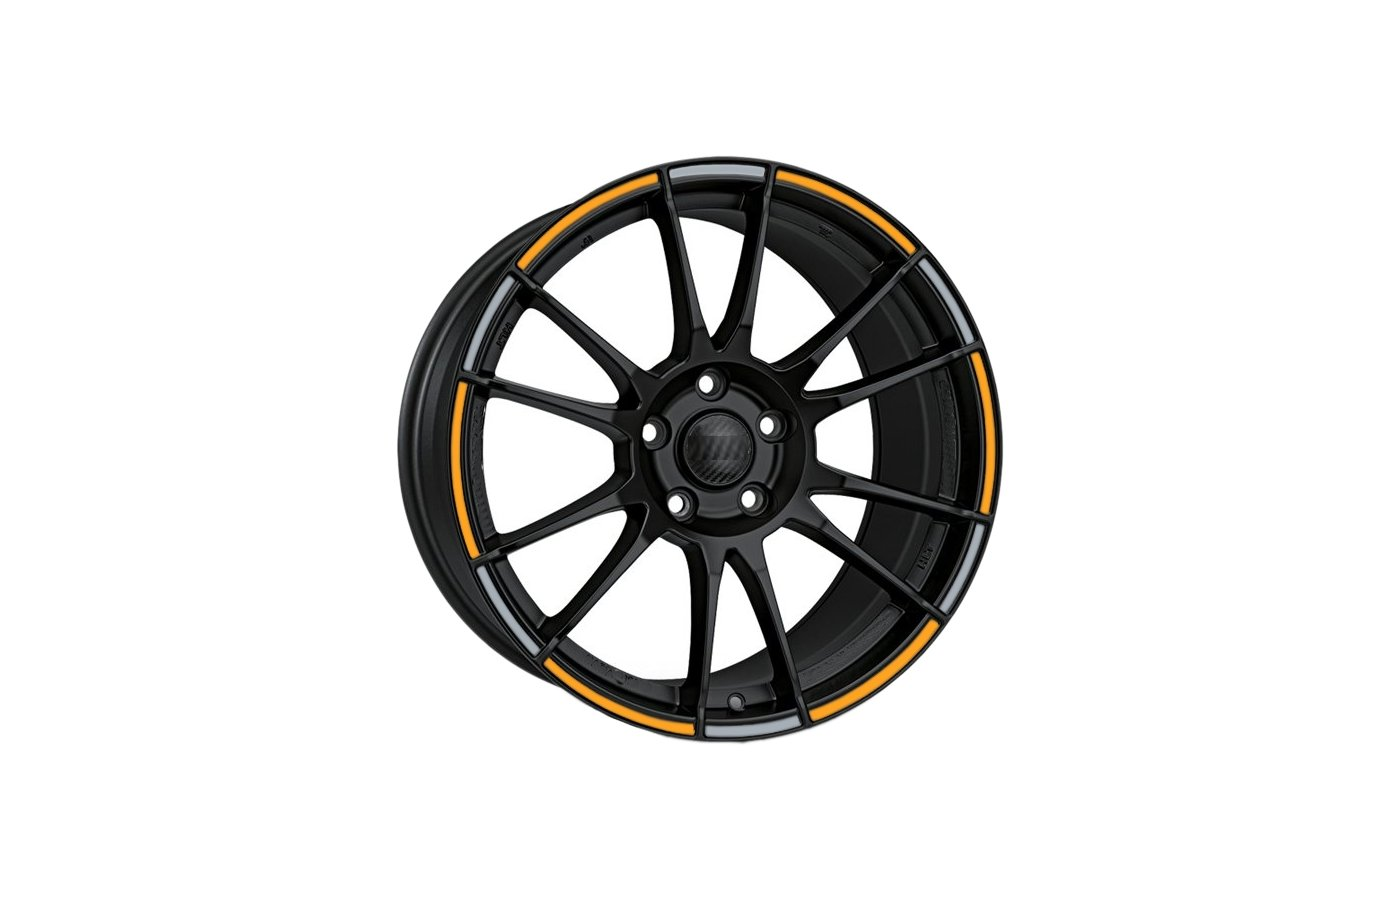 Диск NZ SH670 6.5x16/5x112 D57.1 ET50 MBOGS